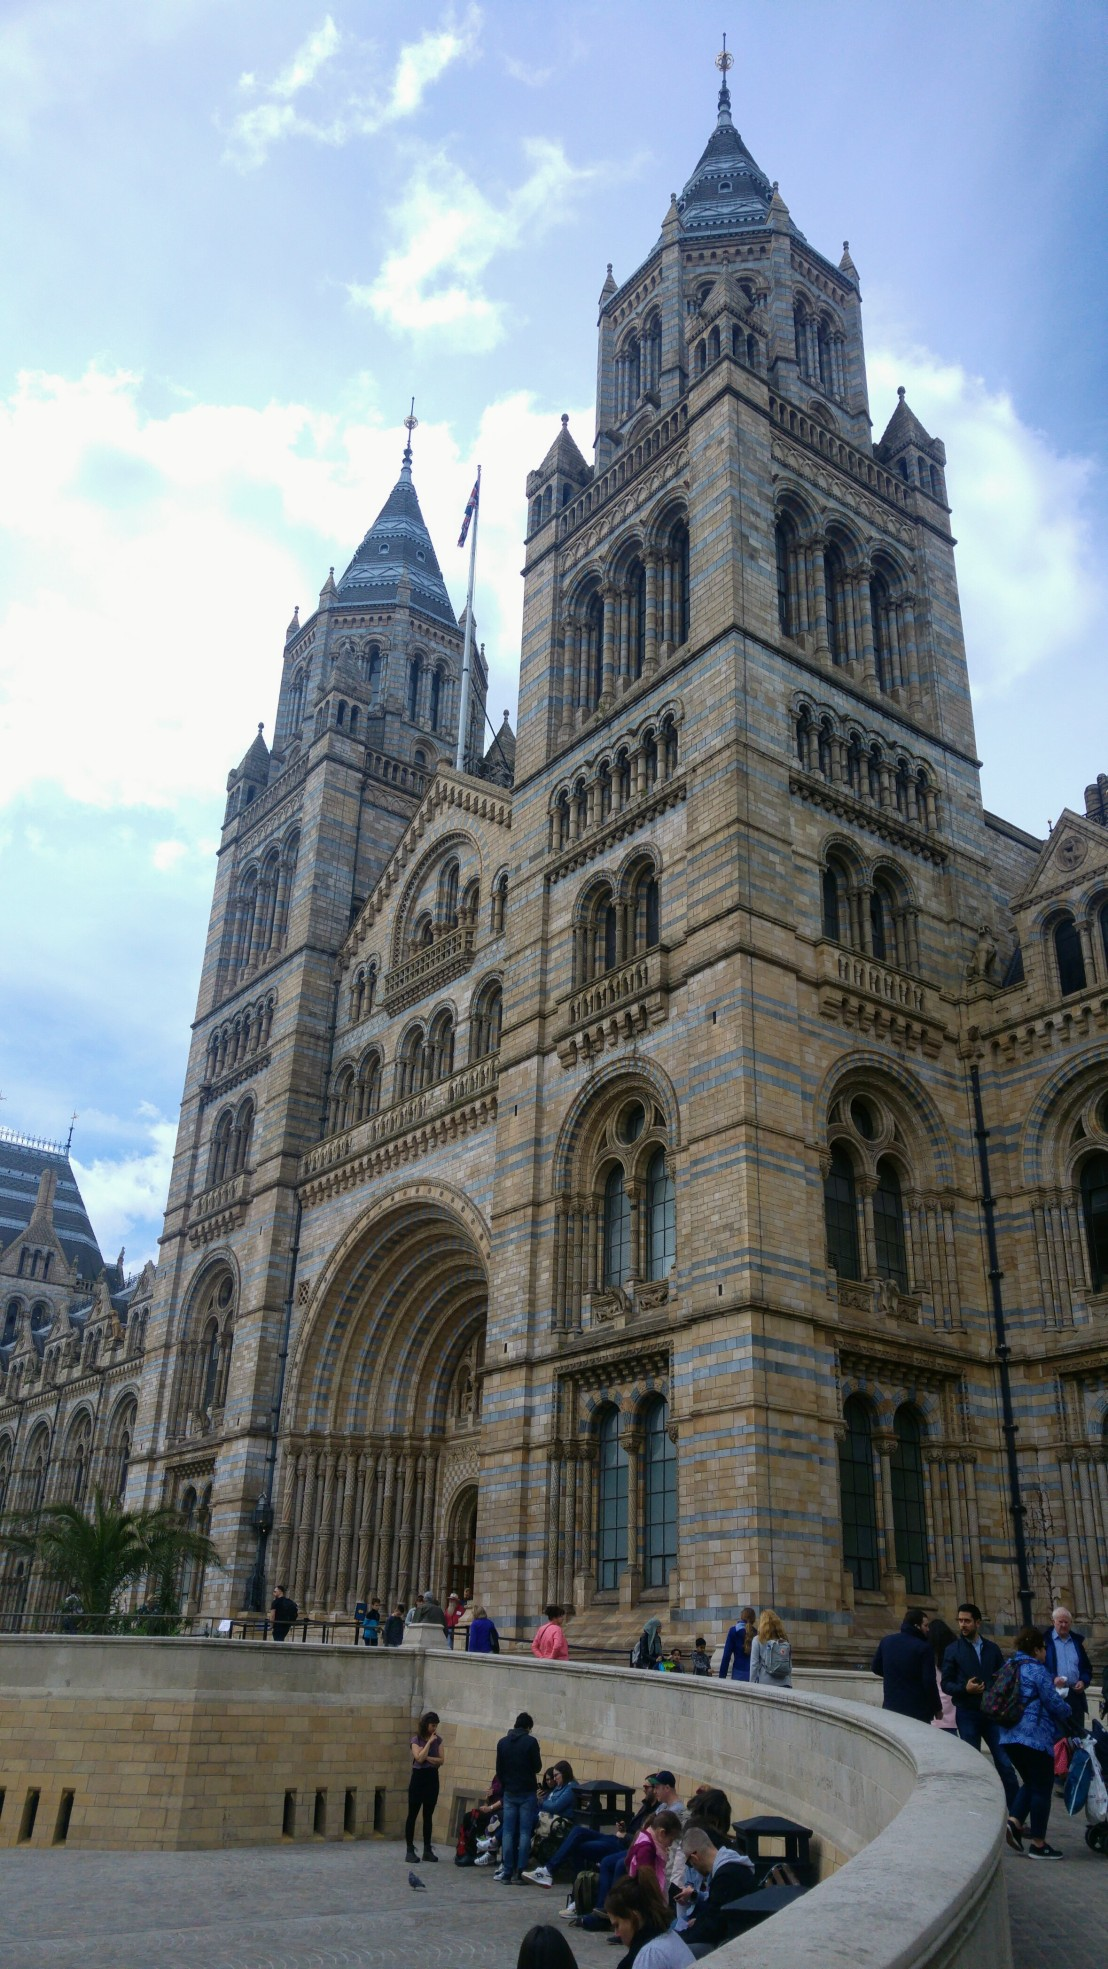 Natural history museum in London - outside